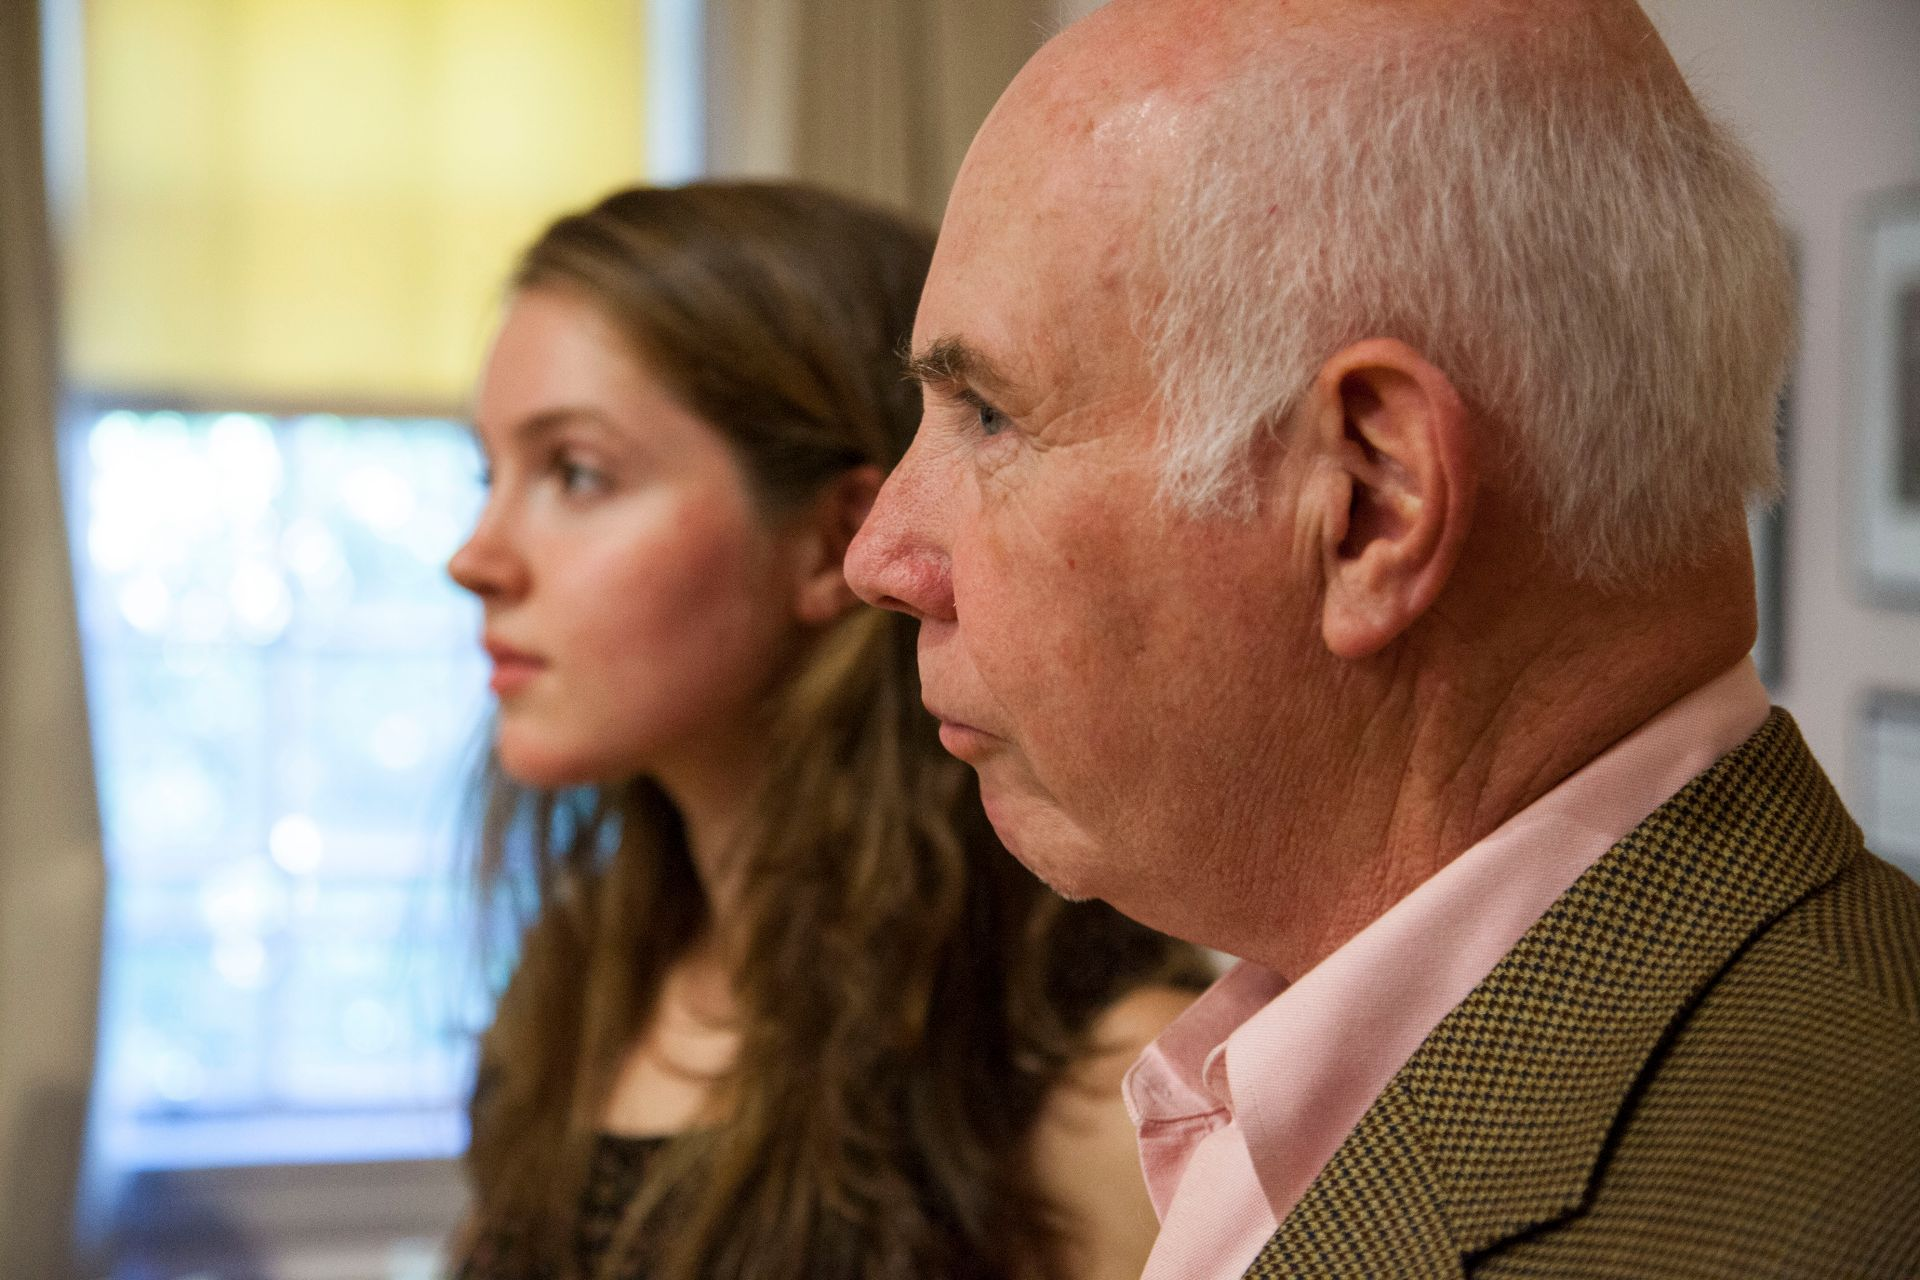 Richard Bevins and daughter Katherine Whitaker at the College Key annual meeting at Reunion 2014, June 6, 2014, in Muskie Archives, which included a posthumous award to his wife and her mother, longtime Bates administrator Elizabeth Sheppard. who died in June 2013. (Jay Burns/Bates College)